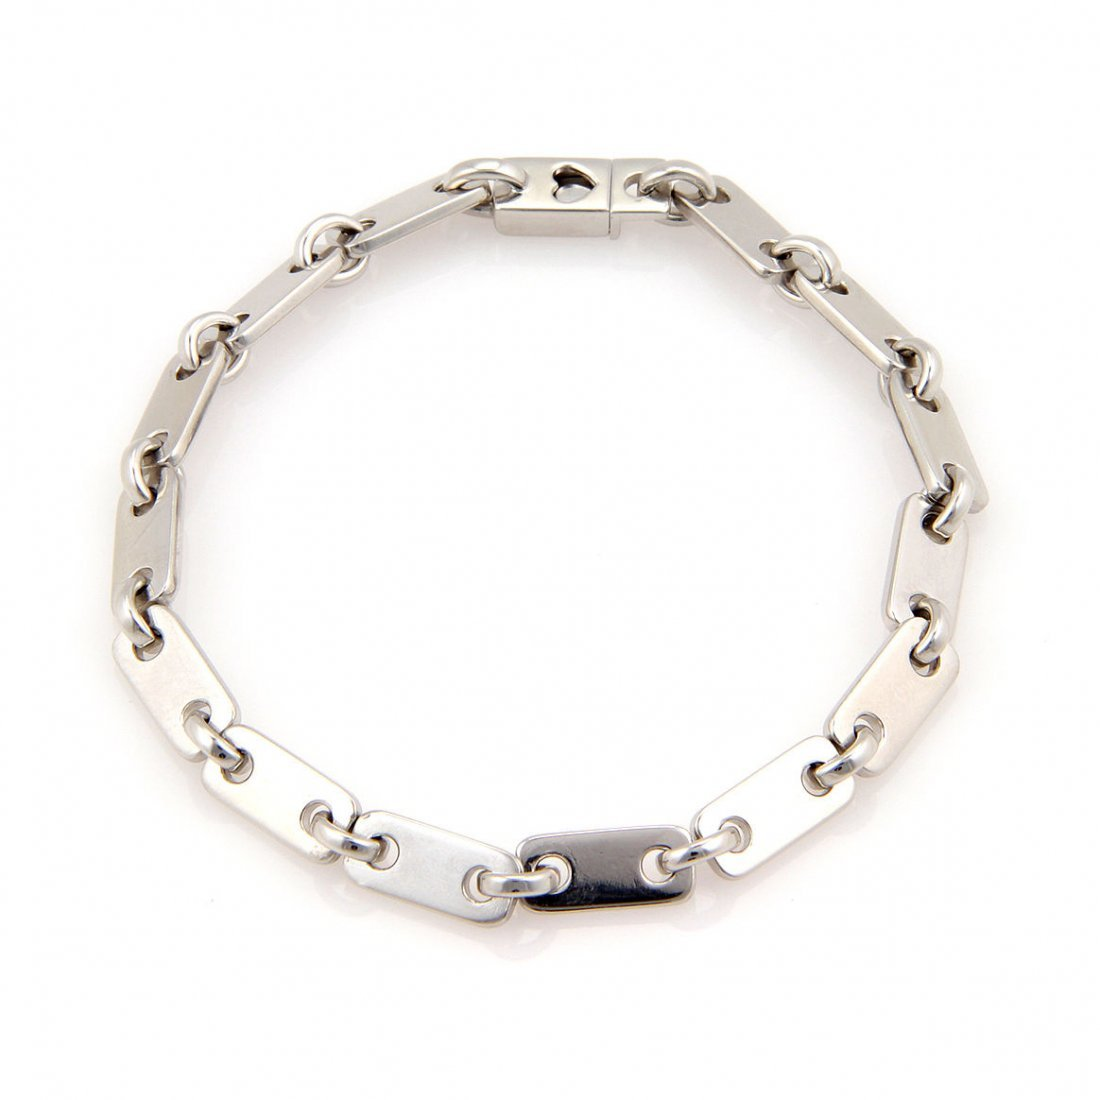 Cartier 18K White Gold Figaro Link Bracelet with